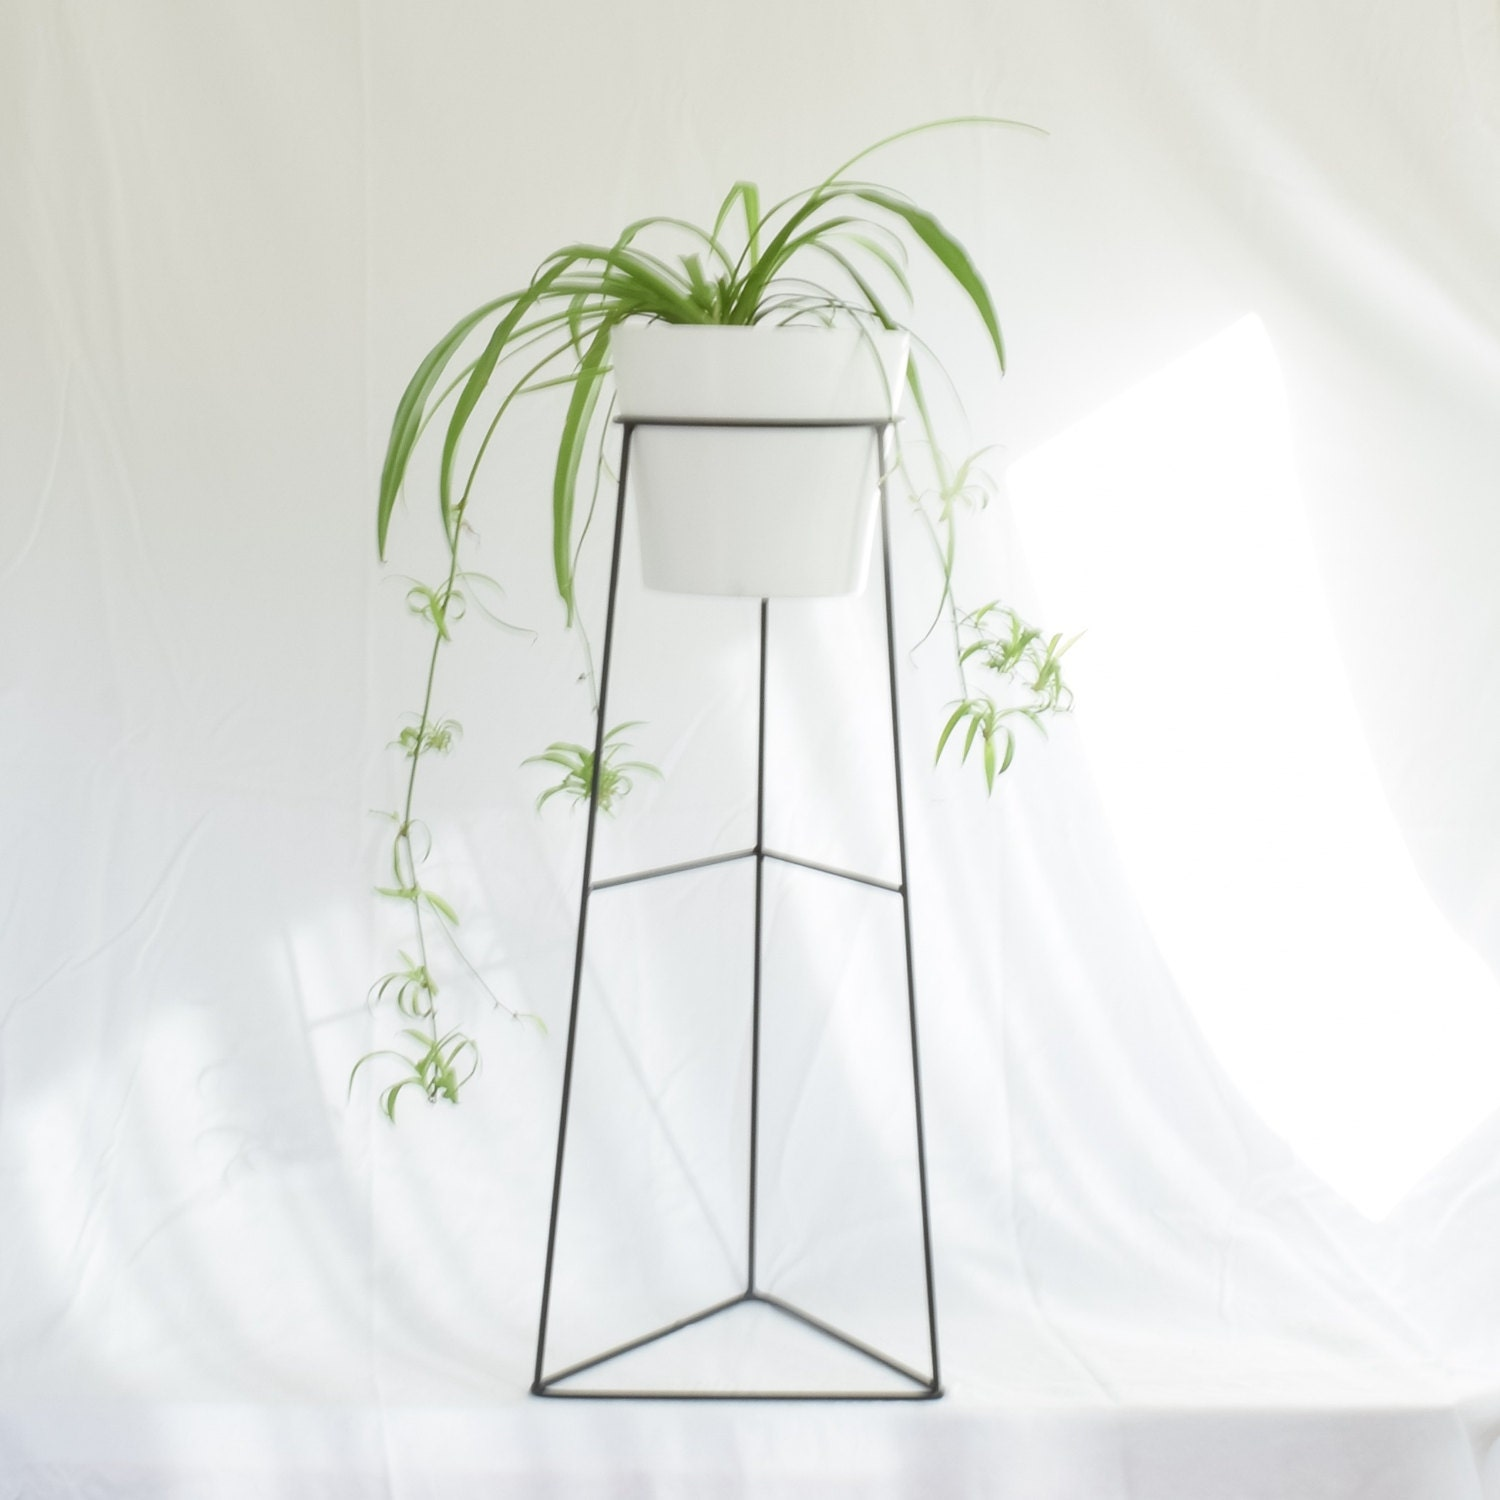 The skaha wire steel metal planter plant stand ceramic - Flower pot stands metal ...